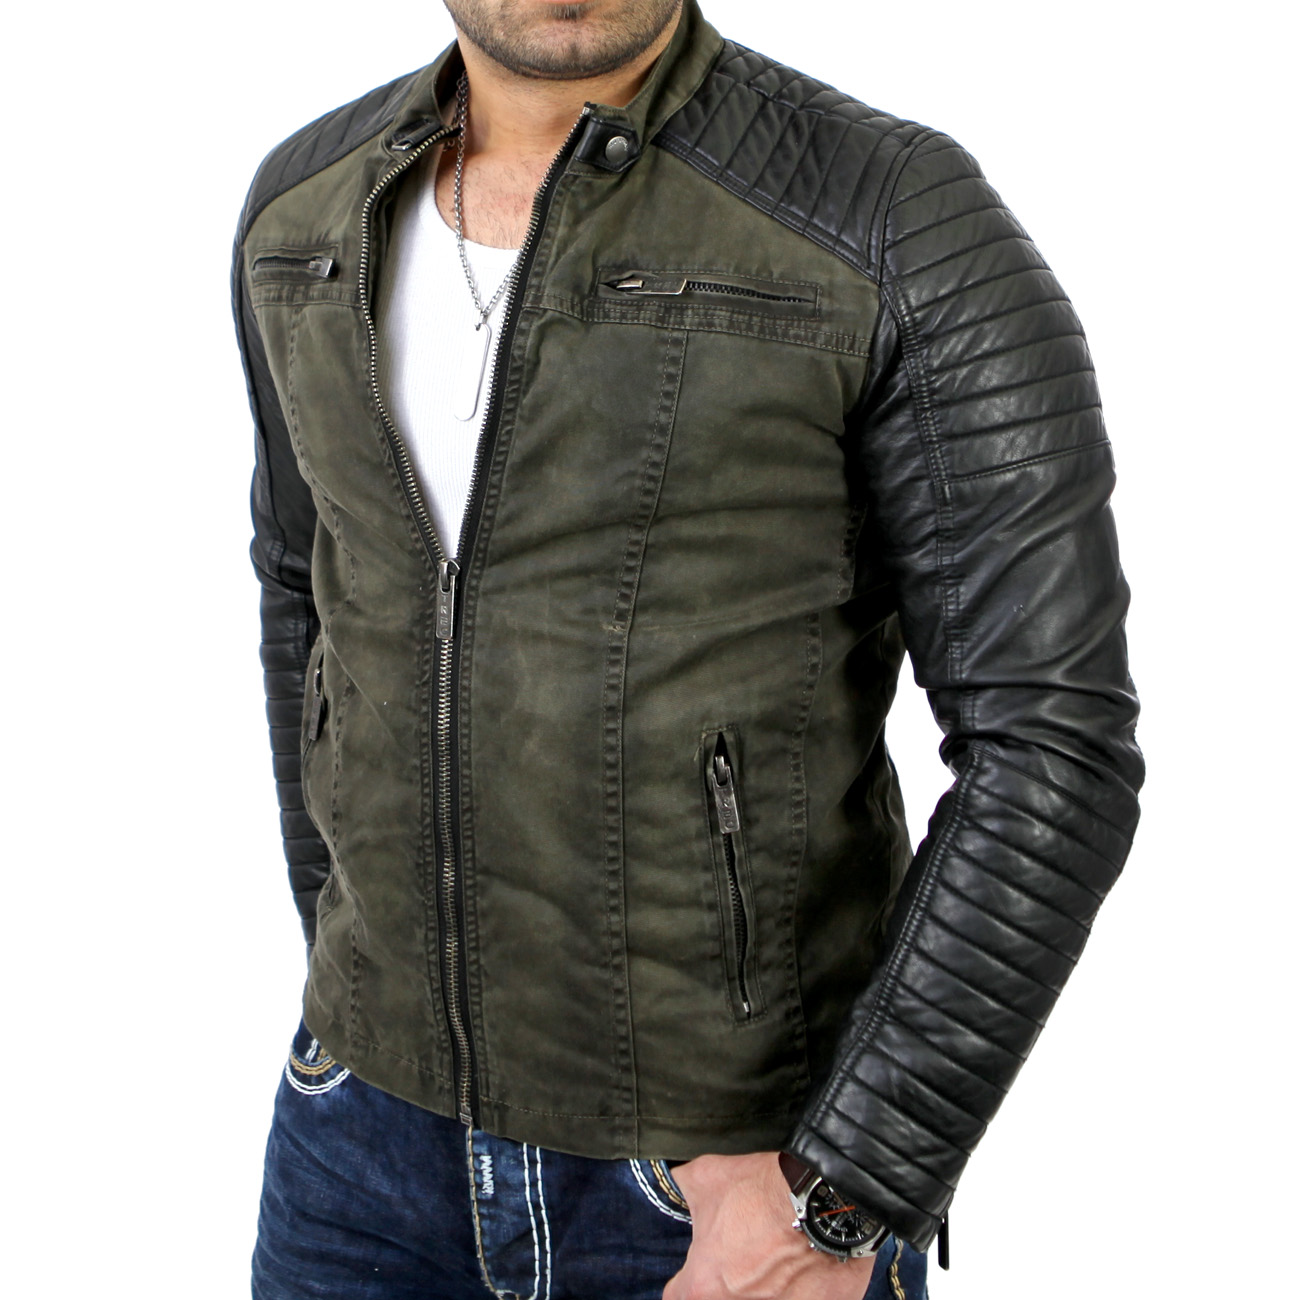 redbridge r 41451 herren biker kunst lederjacke jacke khaki neu ebay. Black Bedroom Furniture Sets. Home Design Ideas